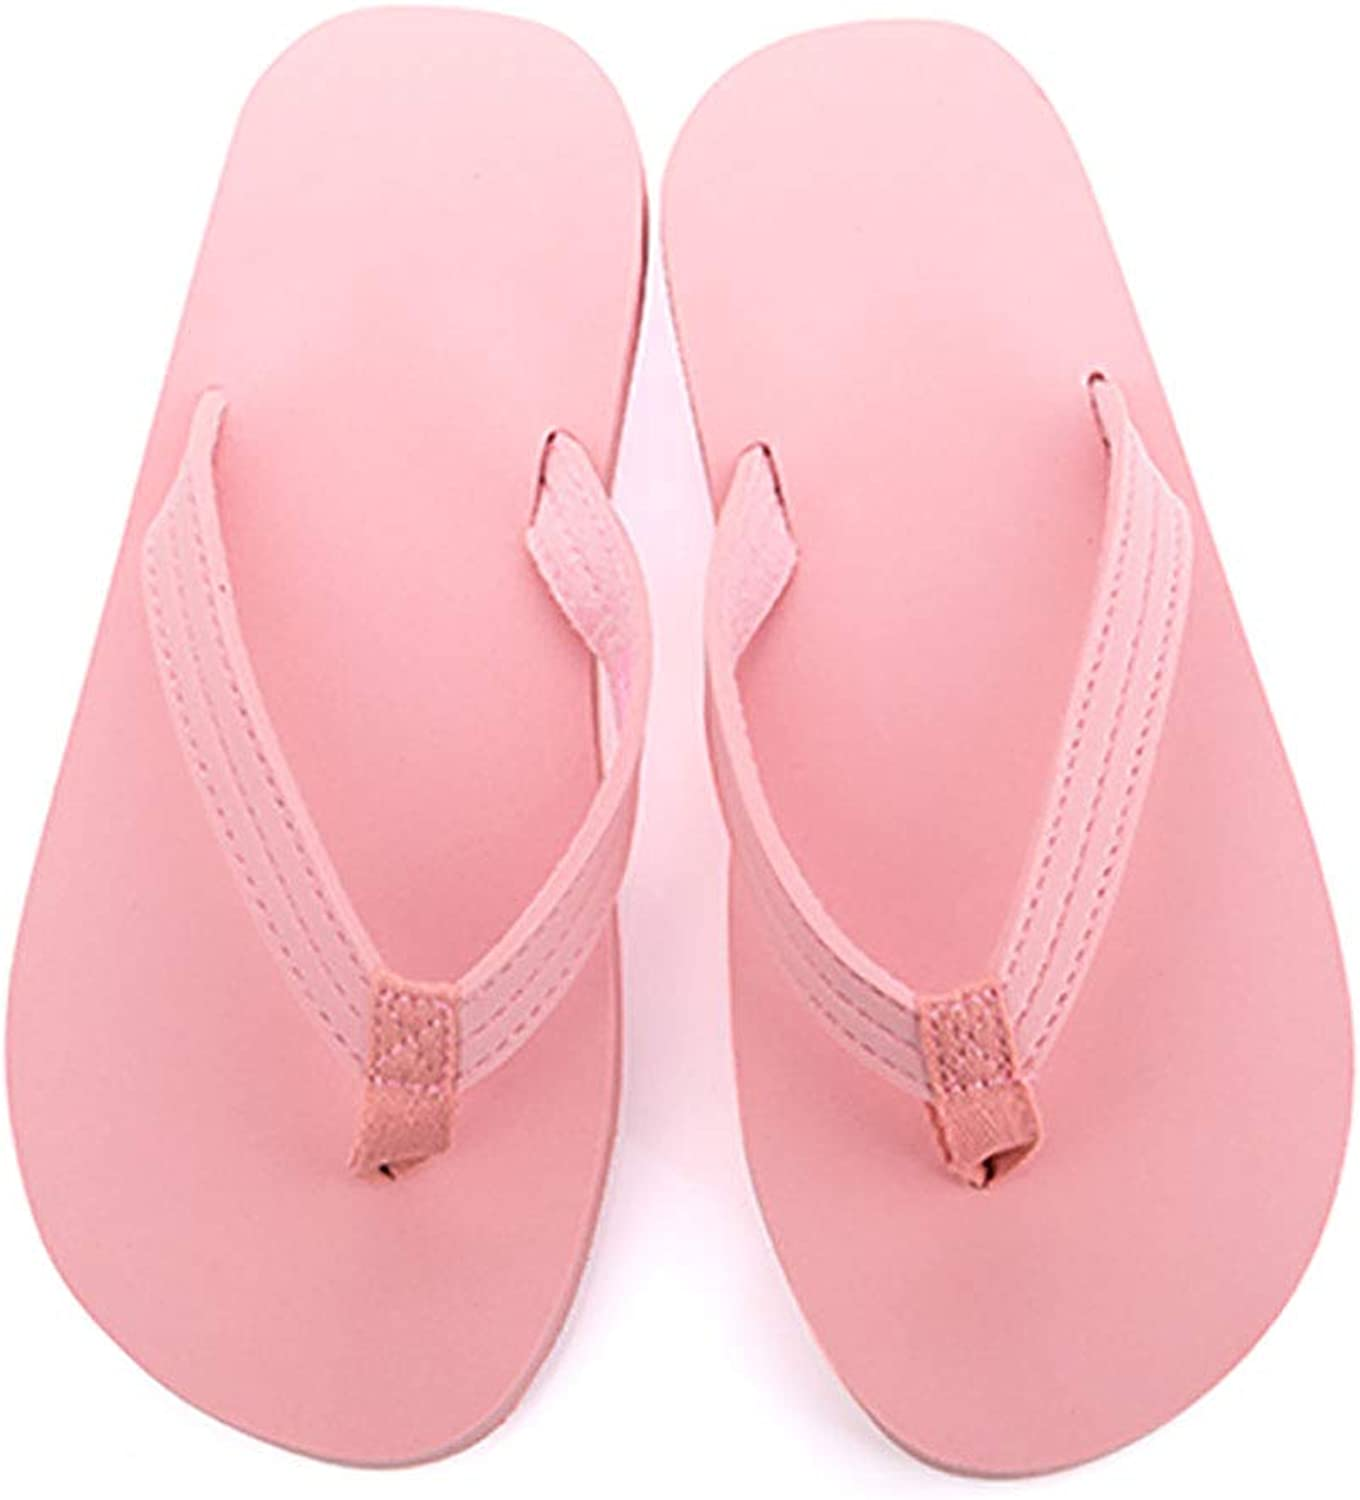 HUYP Pink Sweet Girl Sandals and Slippers Ladies Flip Flops Fashion Summer Beach Tide Slippers (Size   6 US)